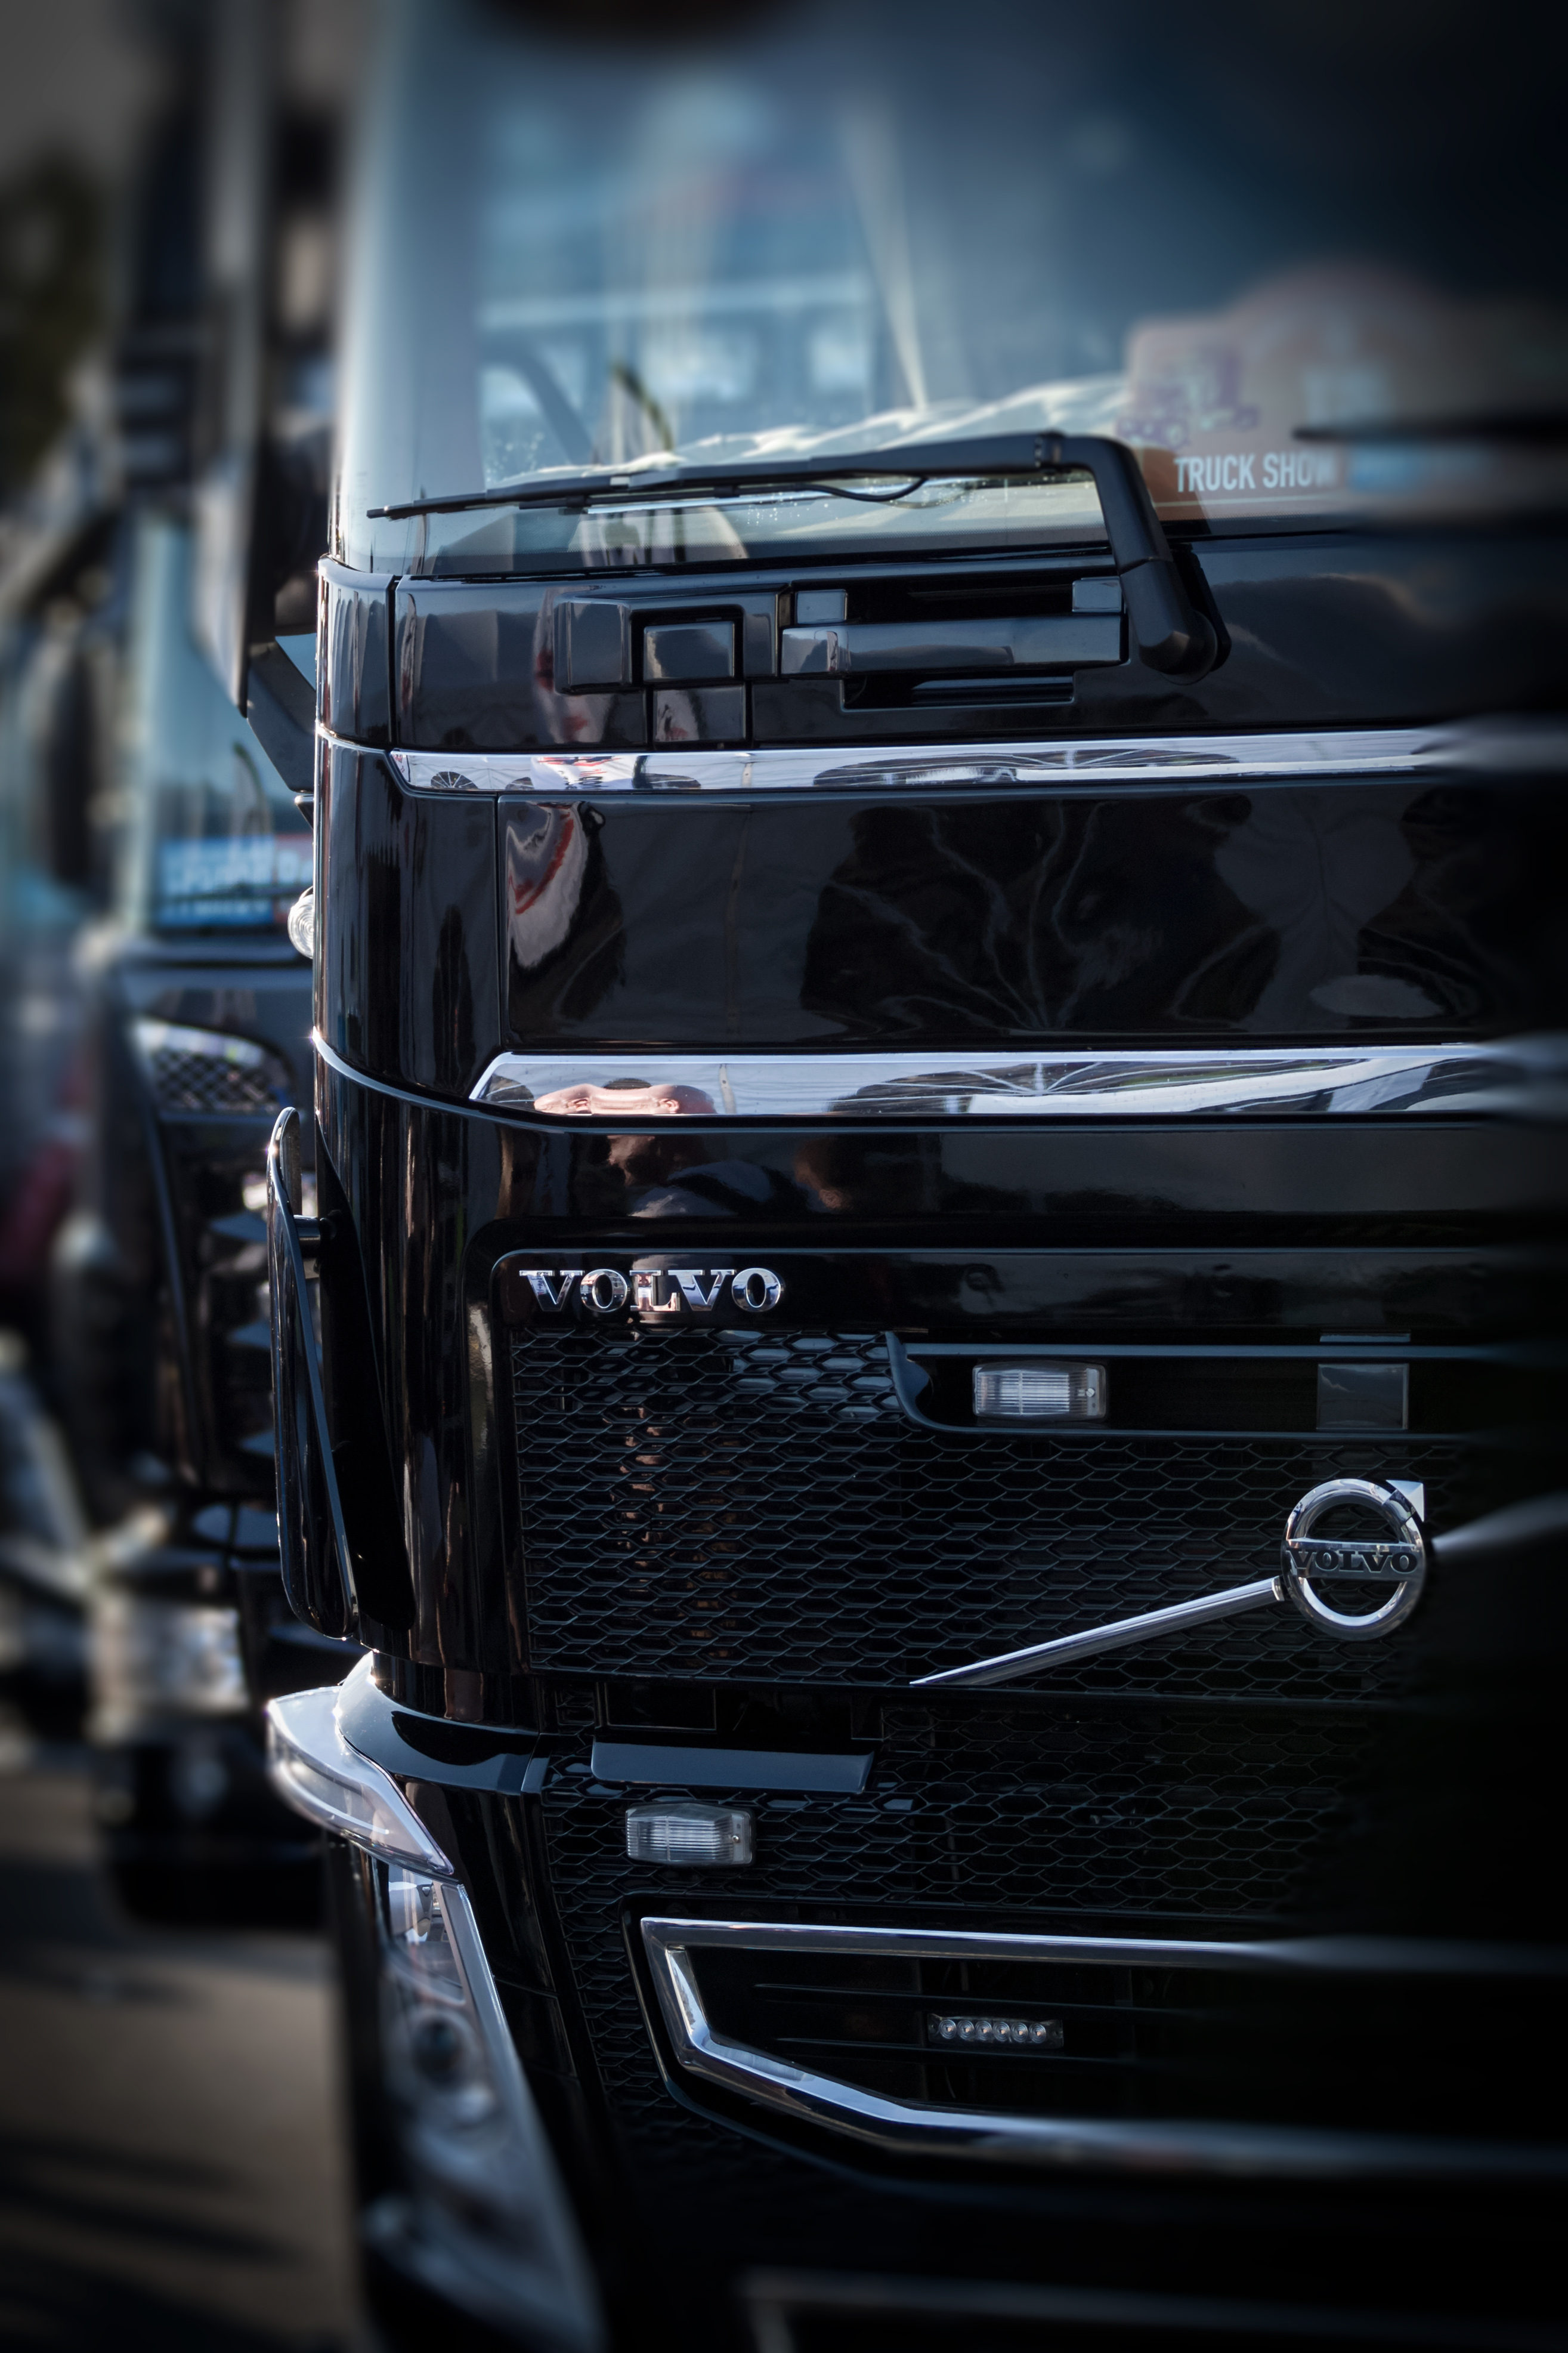 Volvo Wallpapers   High Resolution Trucks Backgrounds Download 2629x3944